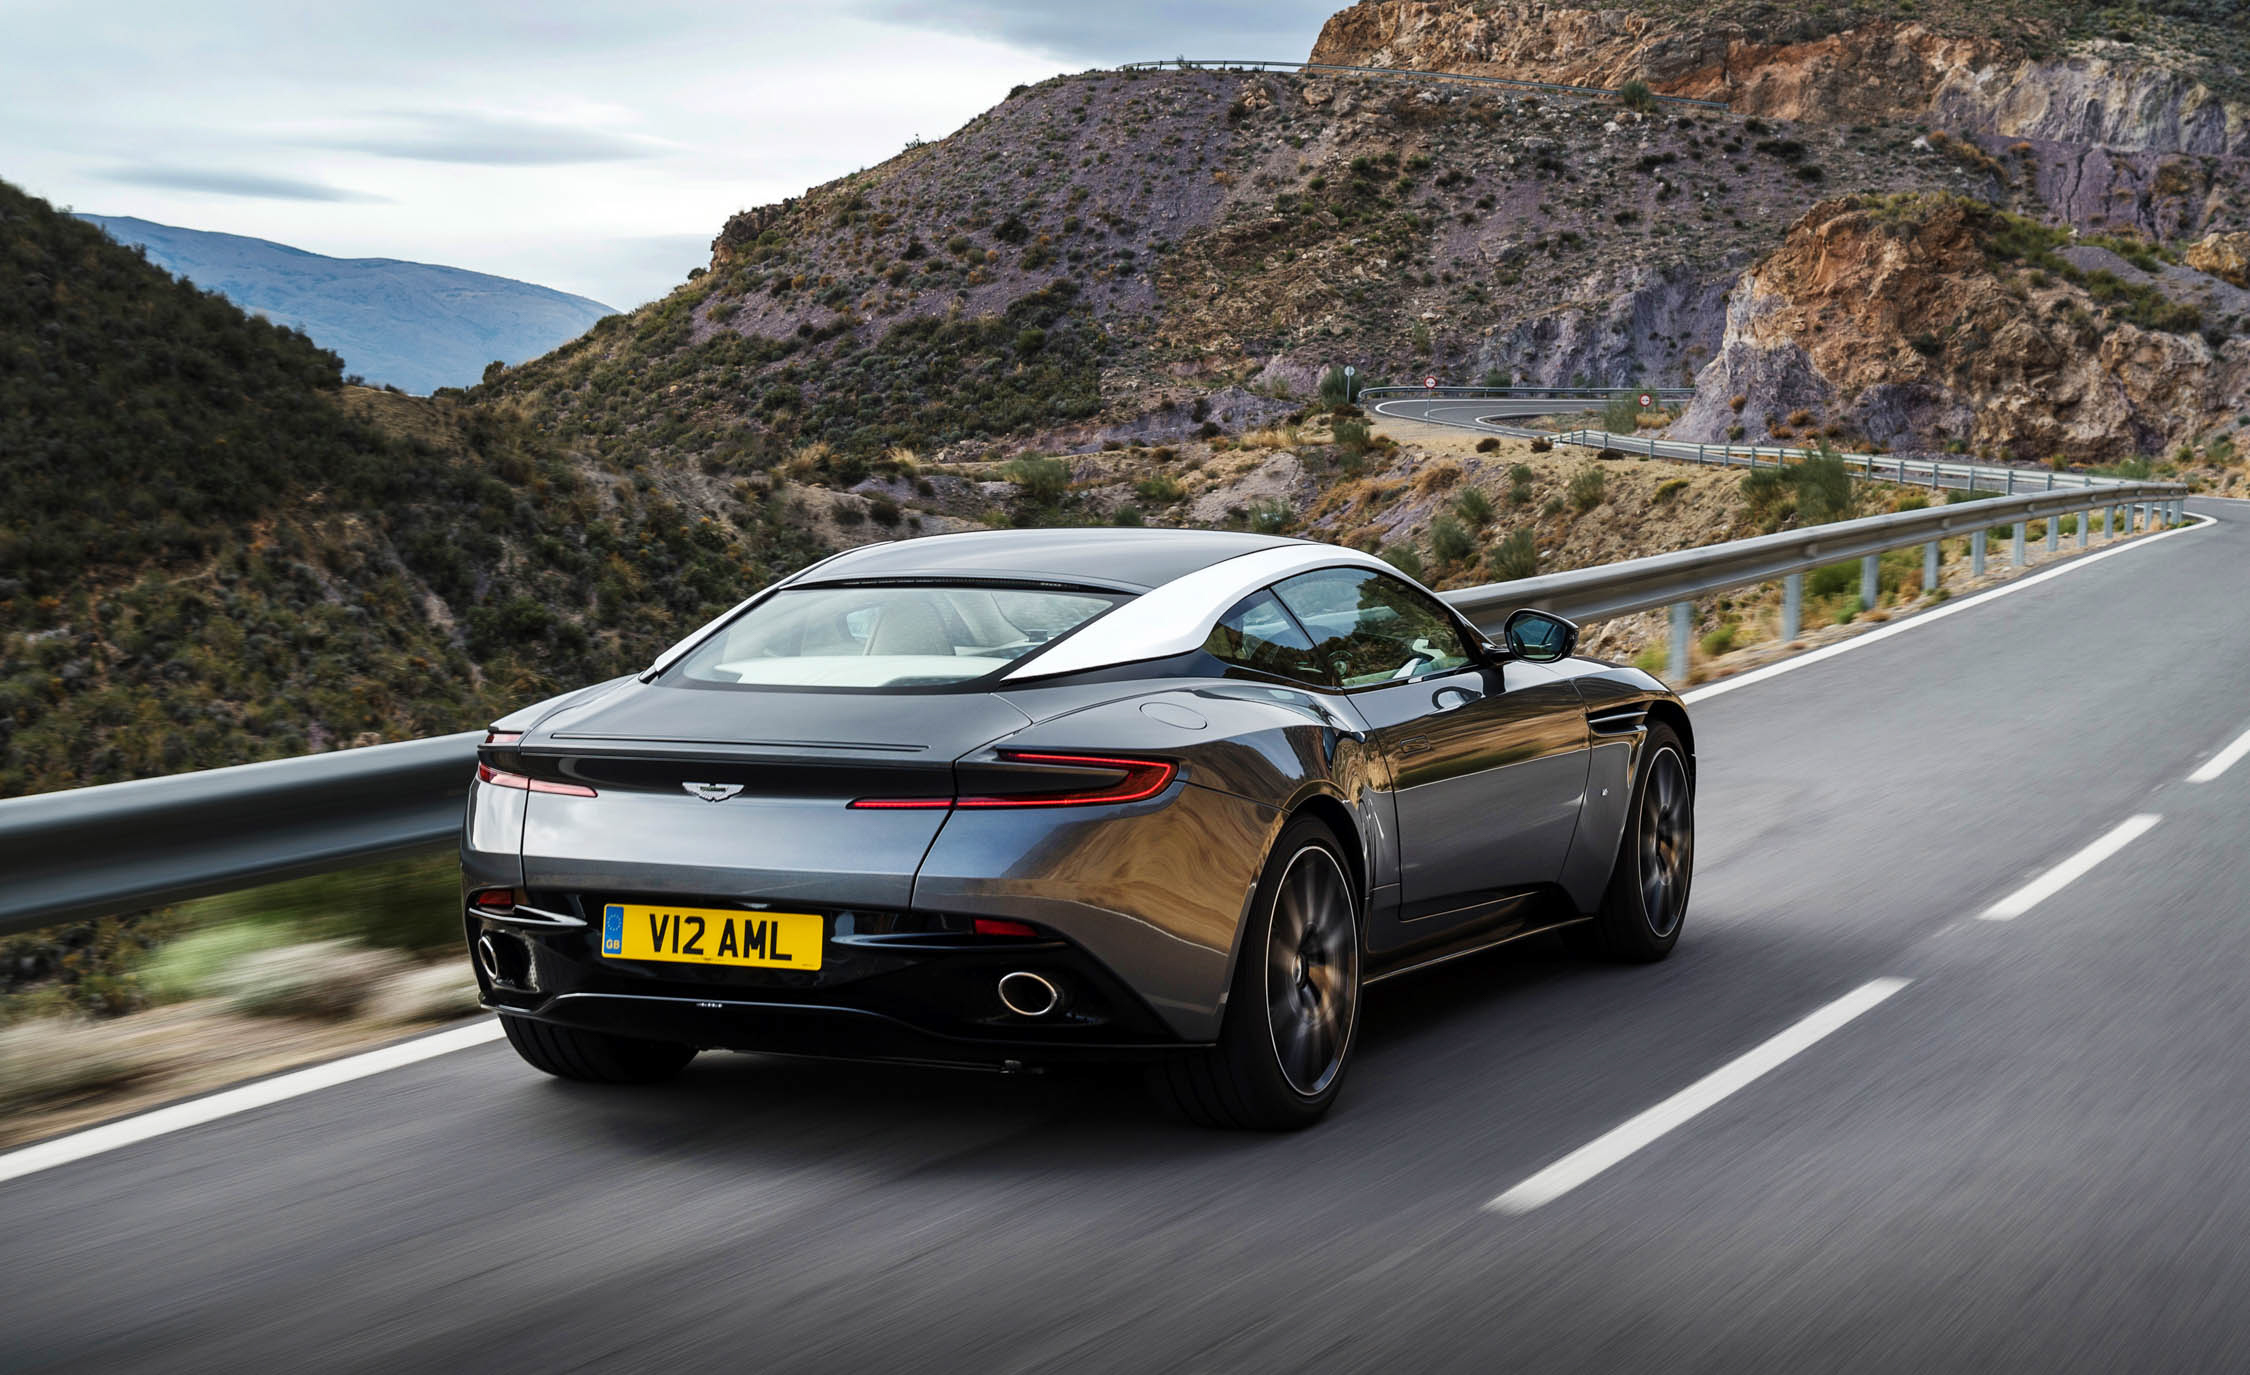 2017 Aston Martin Db11 Test Drive Preview (View 8 of 22)